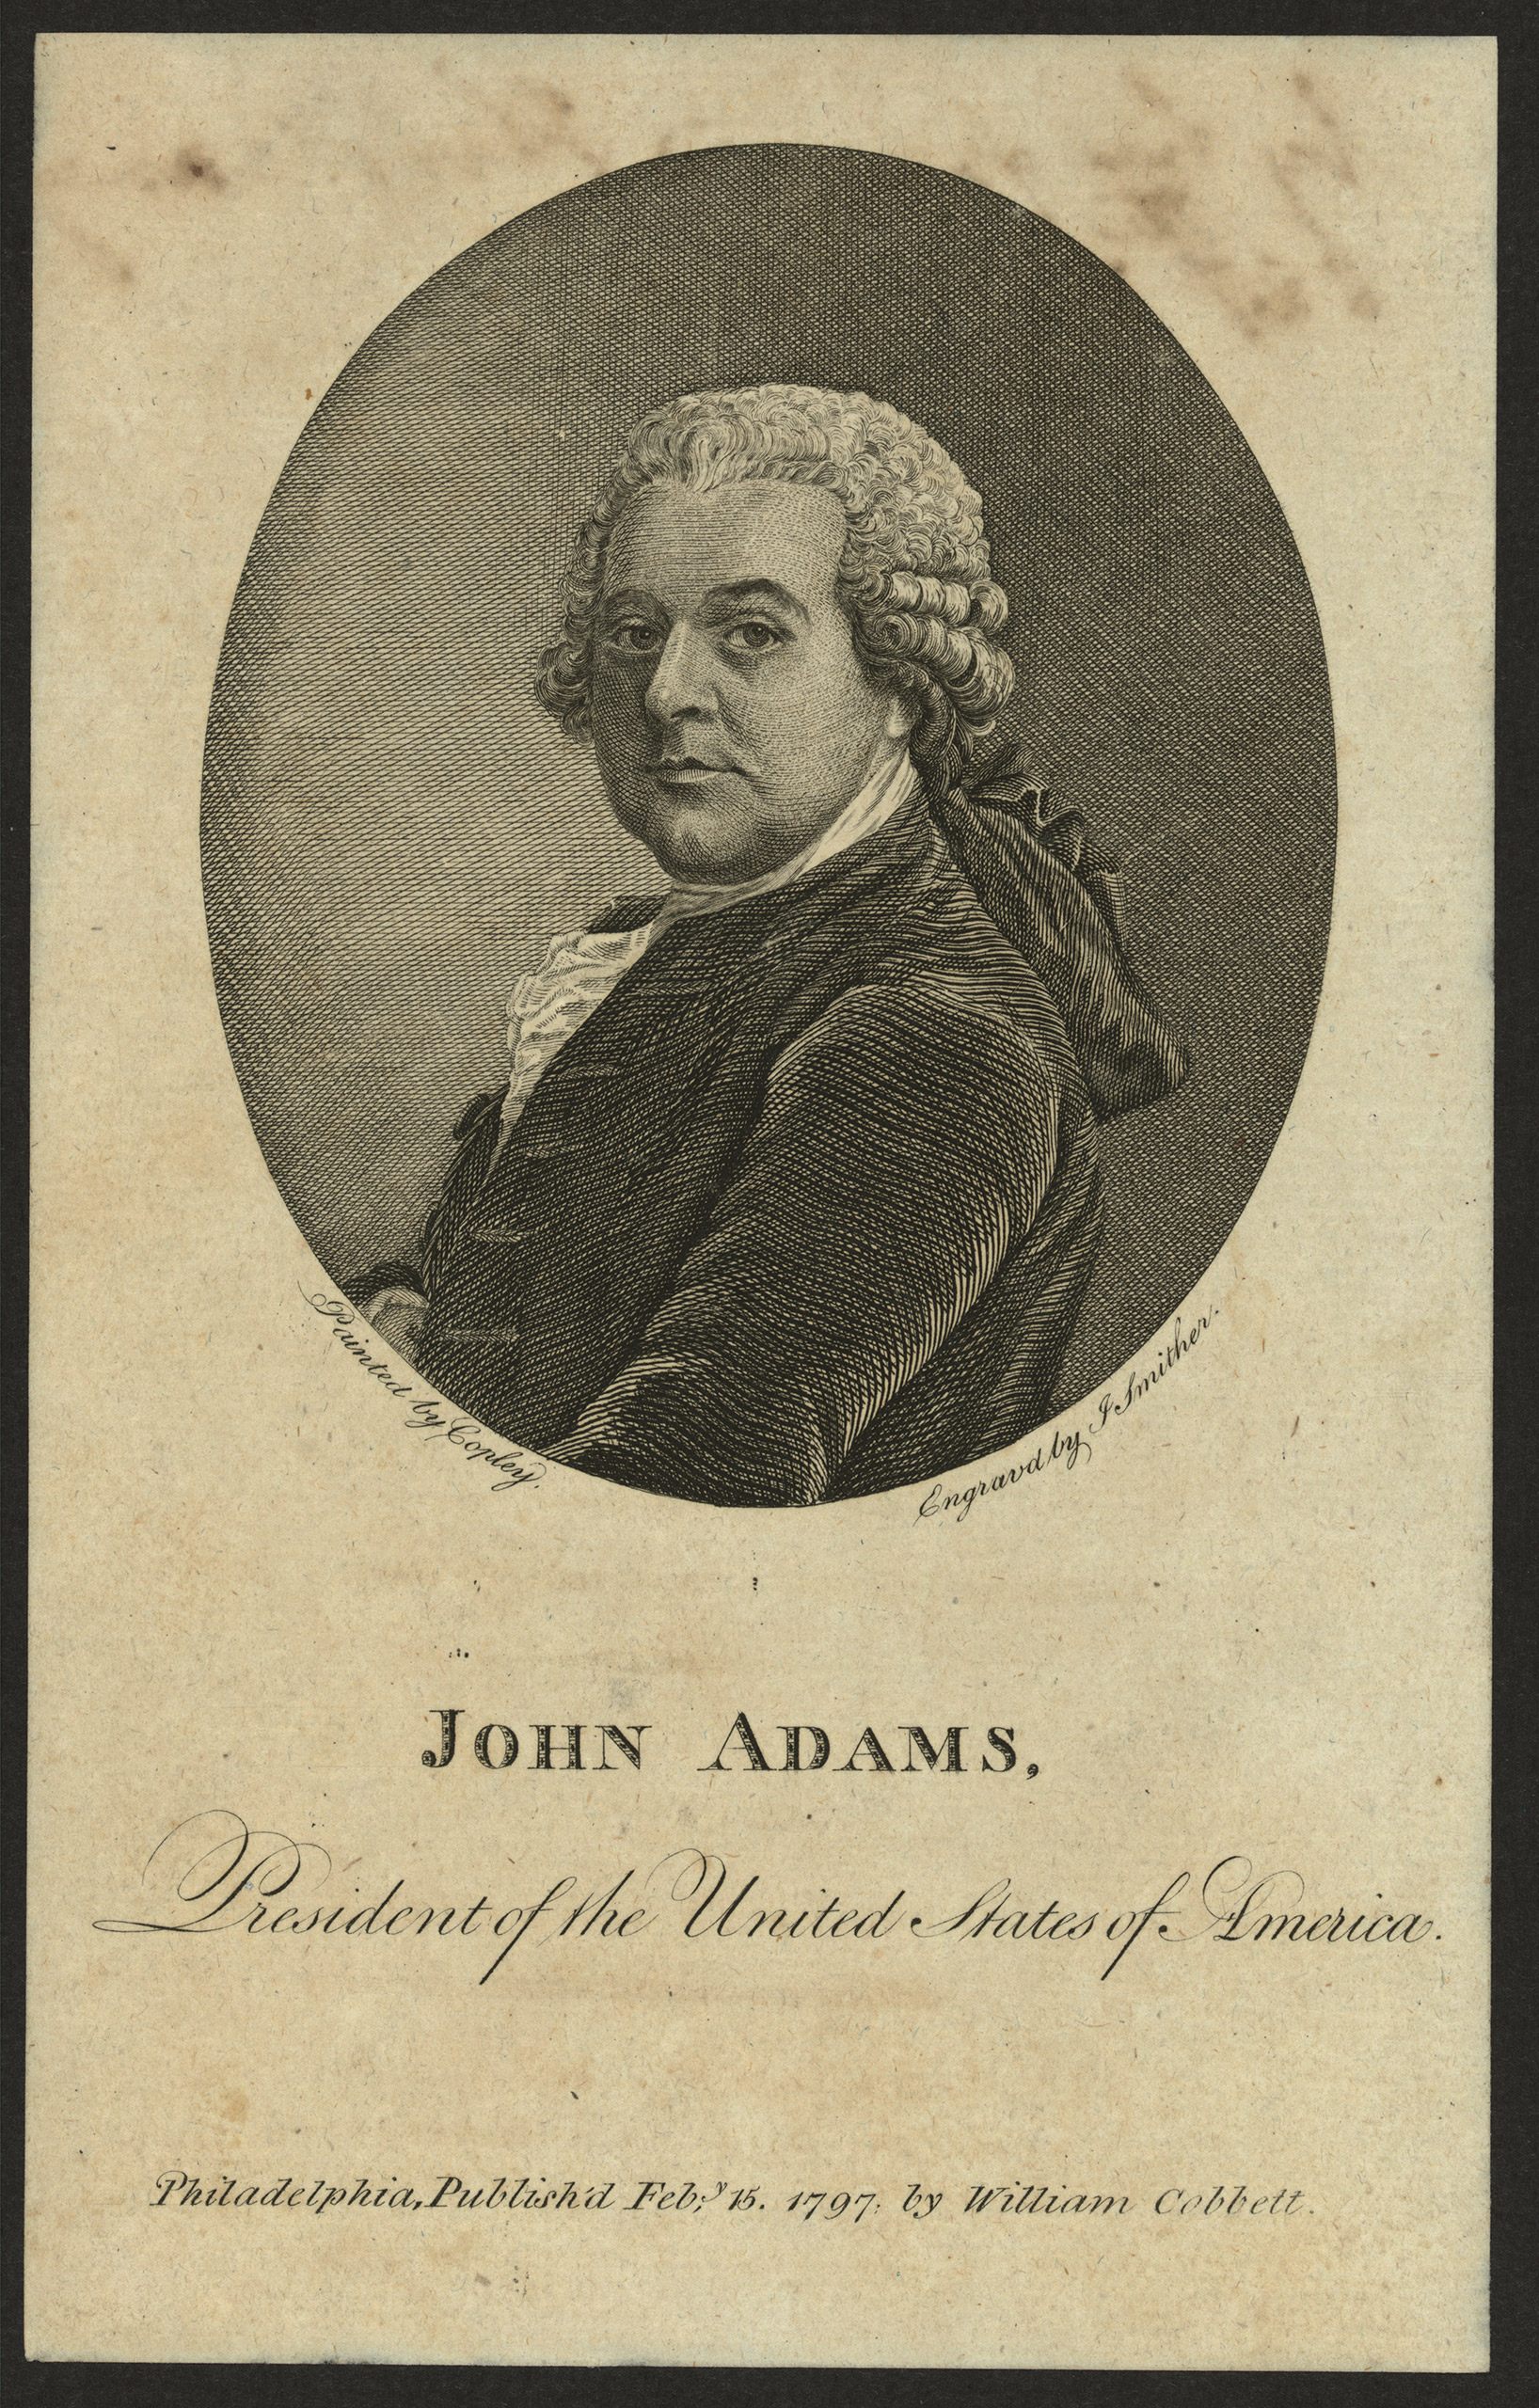 John Adams, the year of his inauguration in 1797.